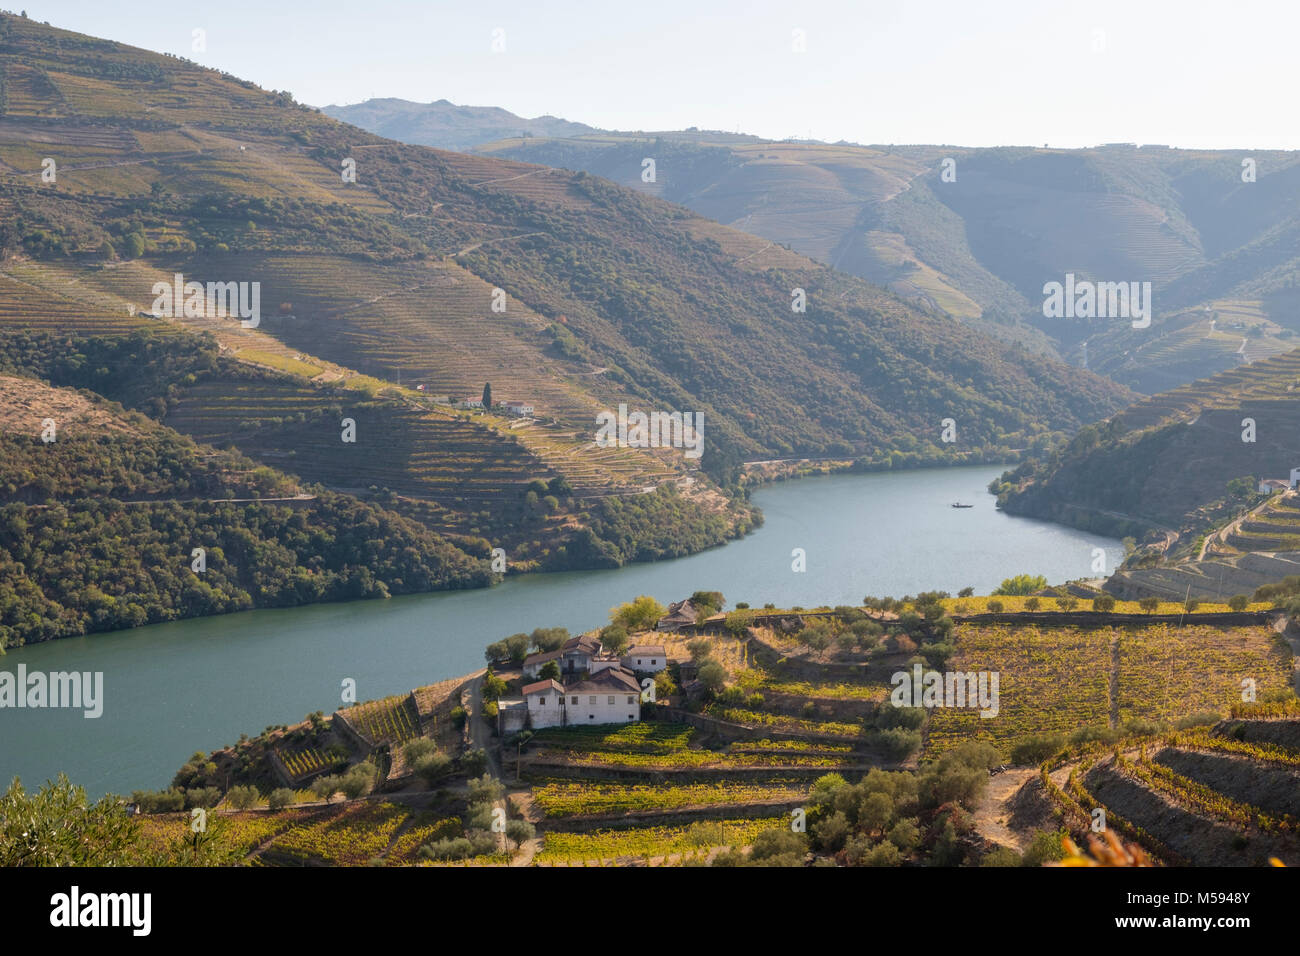 Douro River with river cruise boat  near Pinhao, Douro River Valley, Portugal - Stock Image